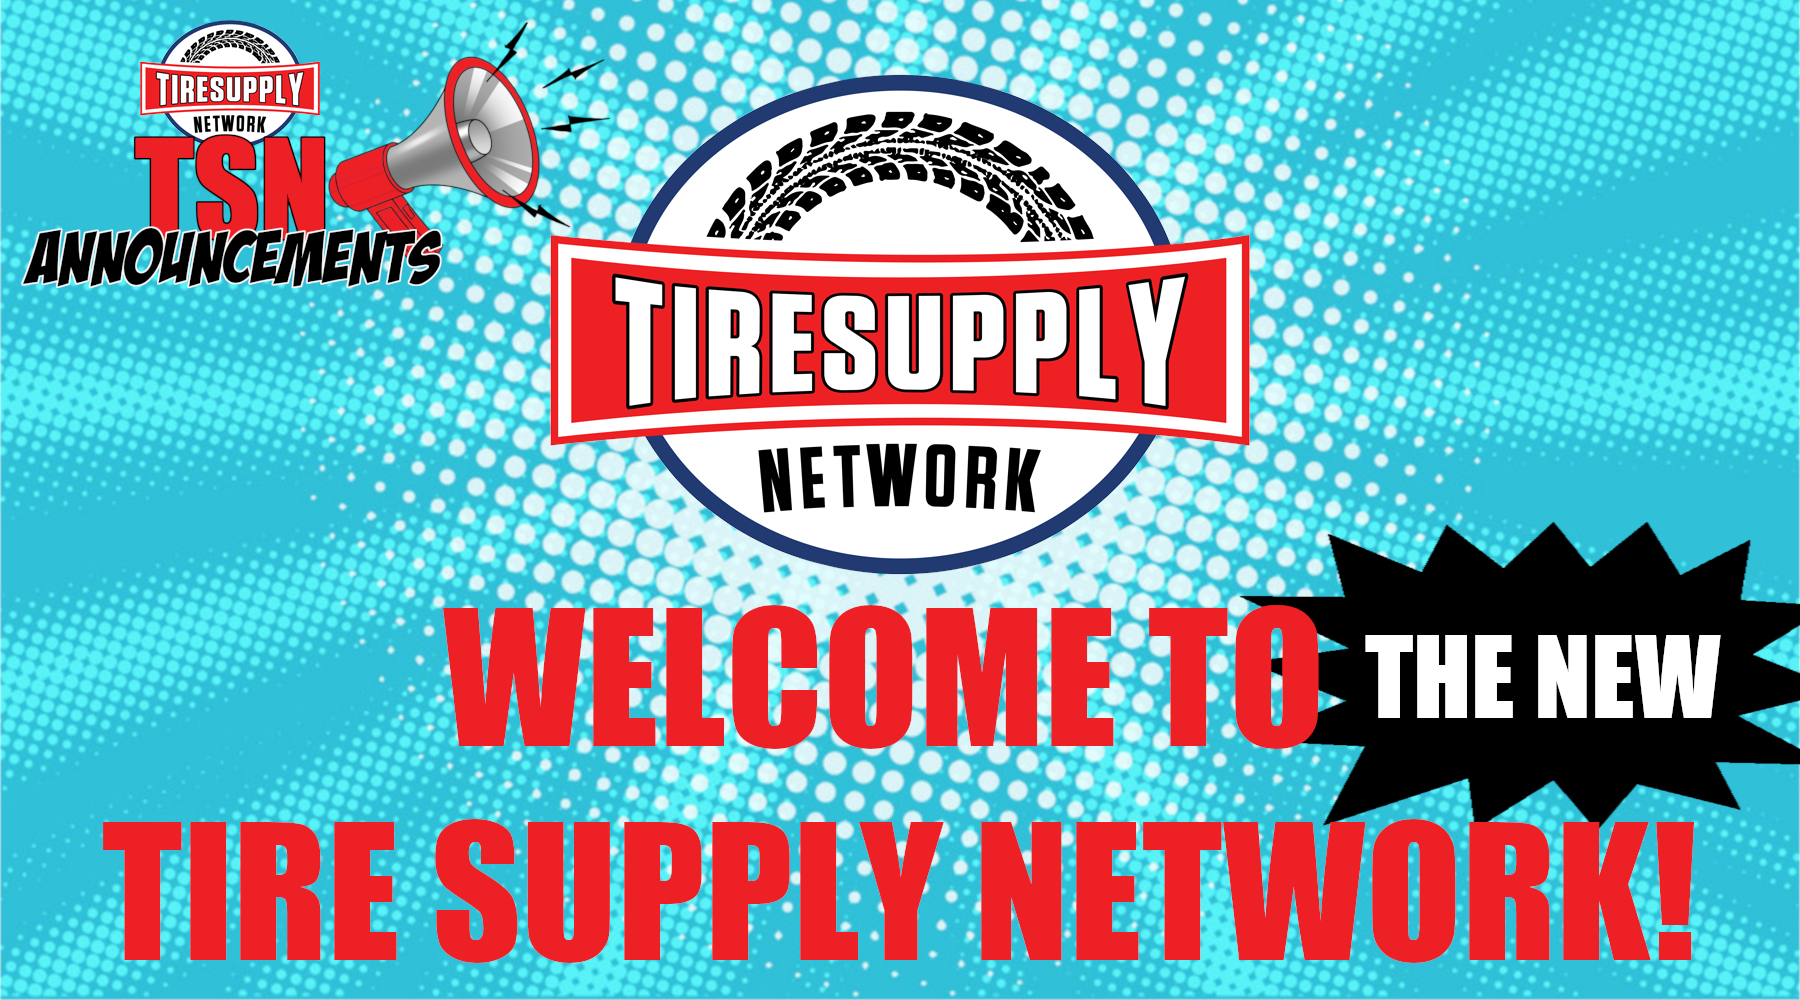 Announcements | Welcome to the NEW Tire Supply Network